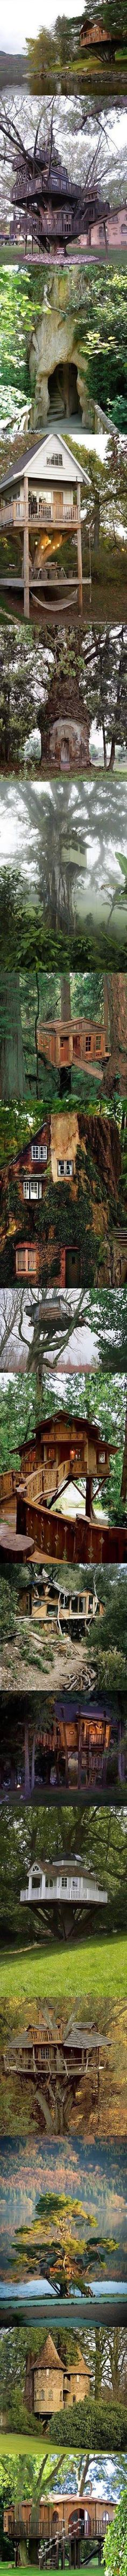 Someday I'll live in a tree house and the birds will fly to me and land on my arms when I sing.